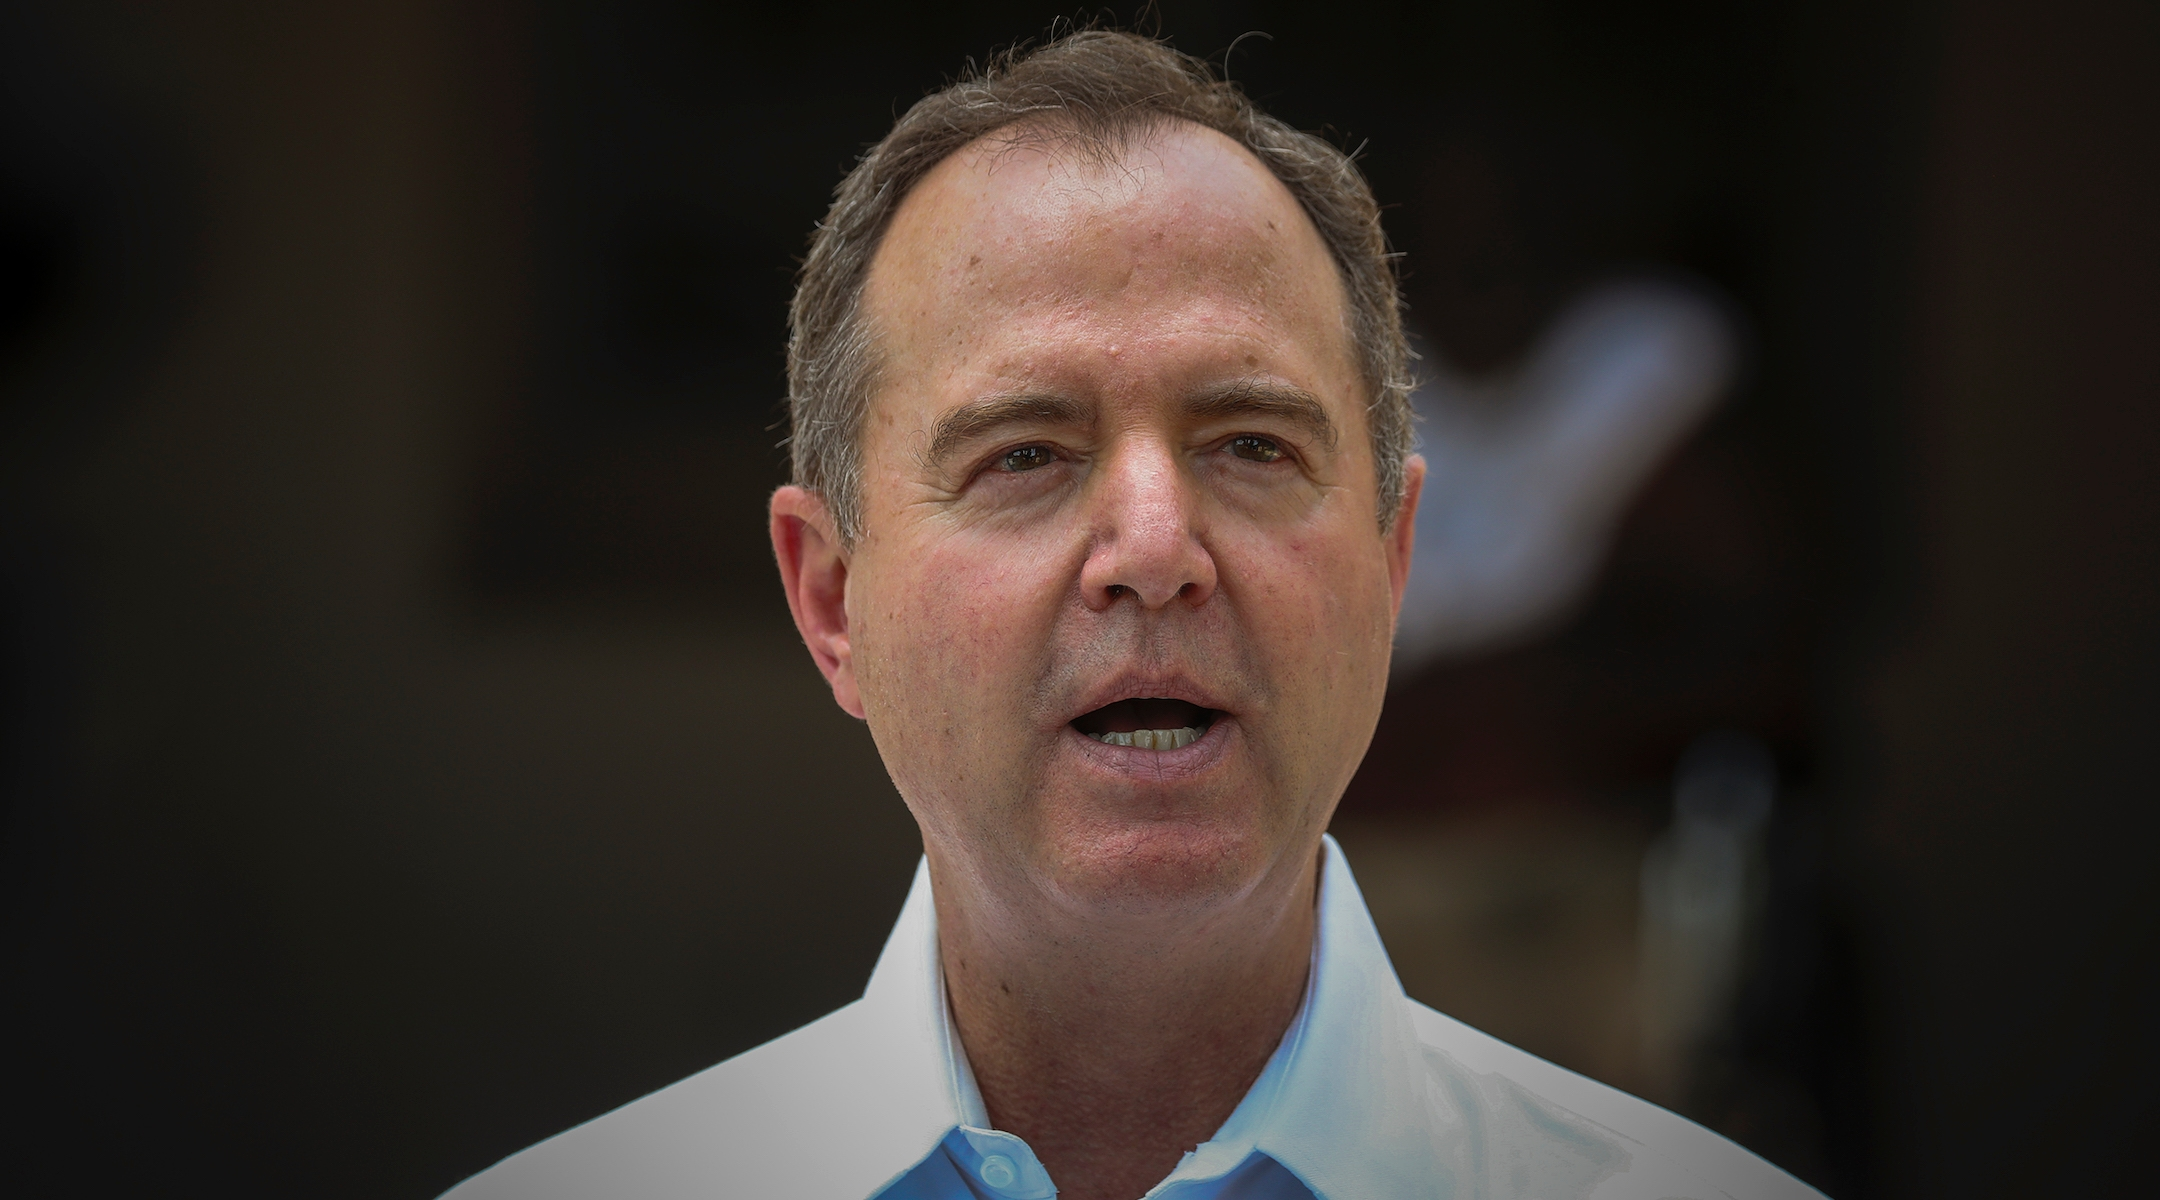 Schiff, seen here in August, blames President Donald Trump and other Republican leaders for rising anti-Semitism. (Irfan Khan / Los Angeles Times via Getty Images)